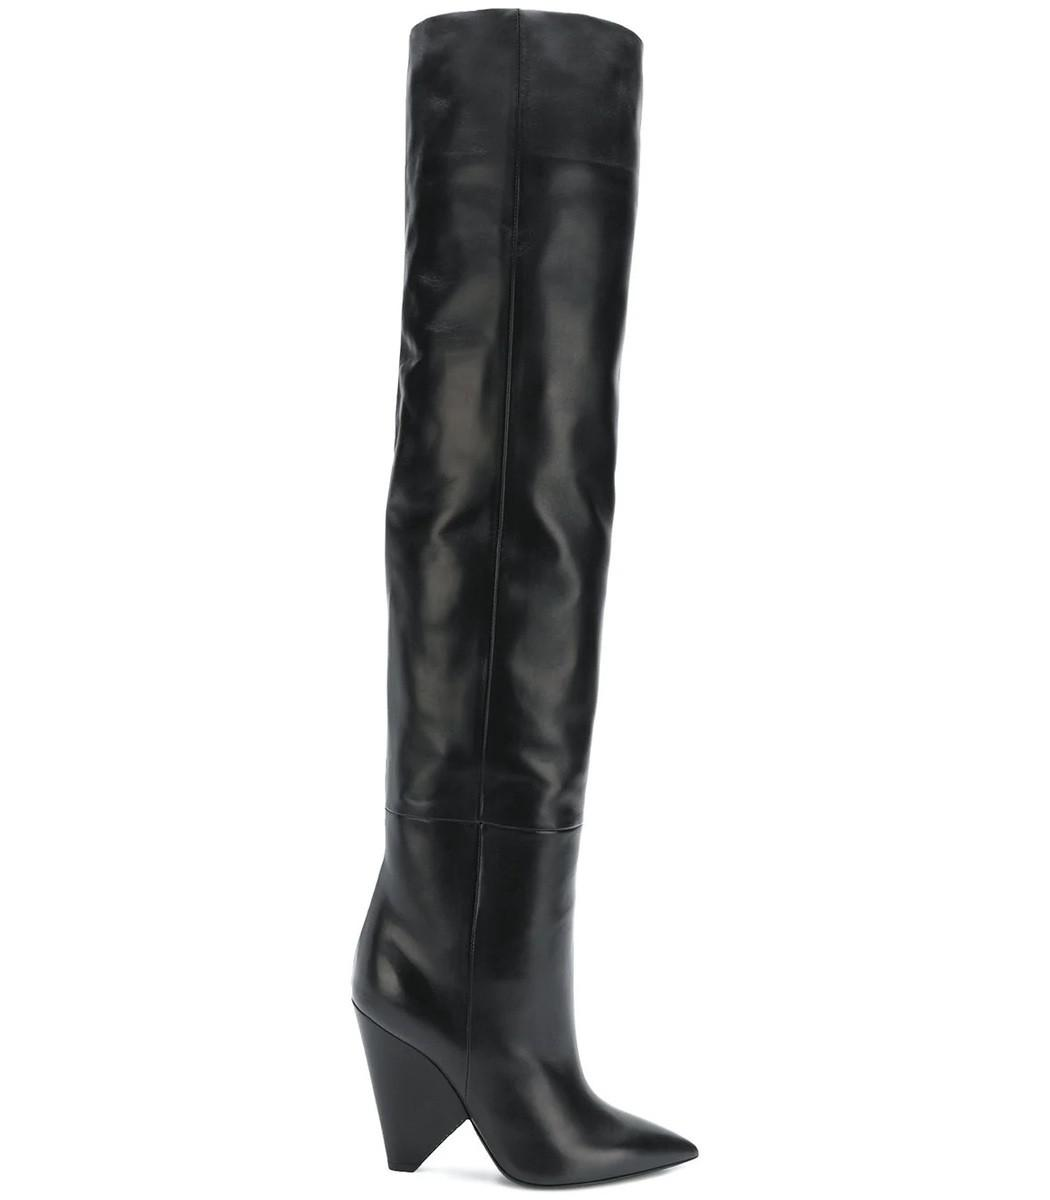 59716cfe477 Lyst - Saint Laurent Niki Wedge Boots in Black - Save 71%